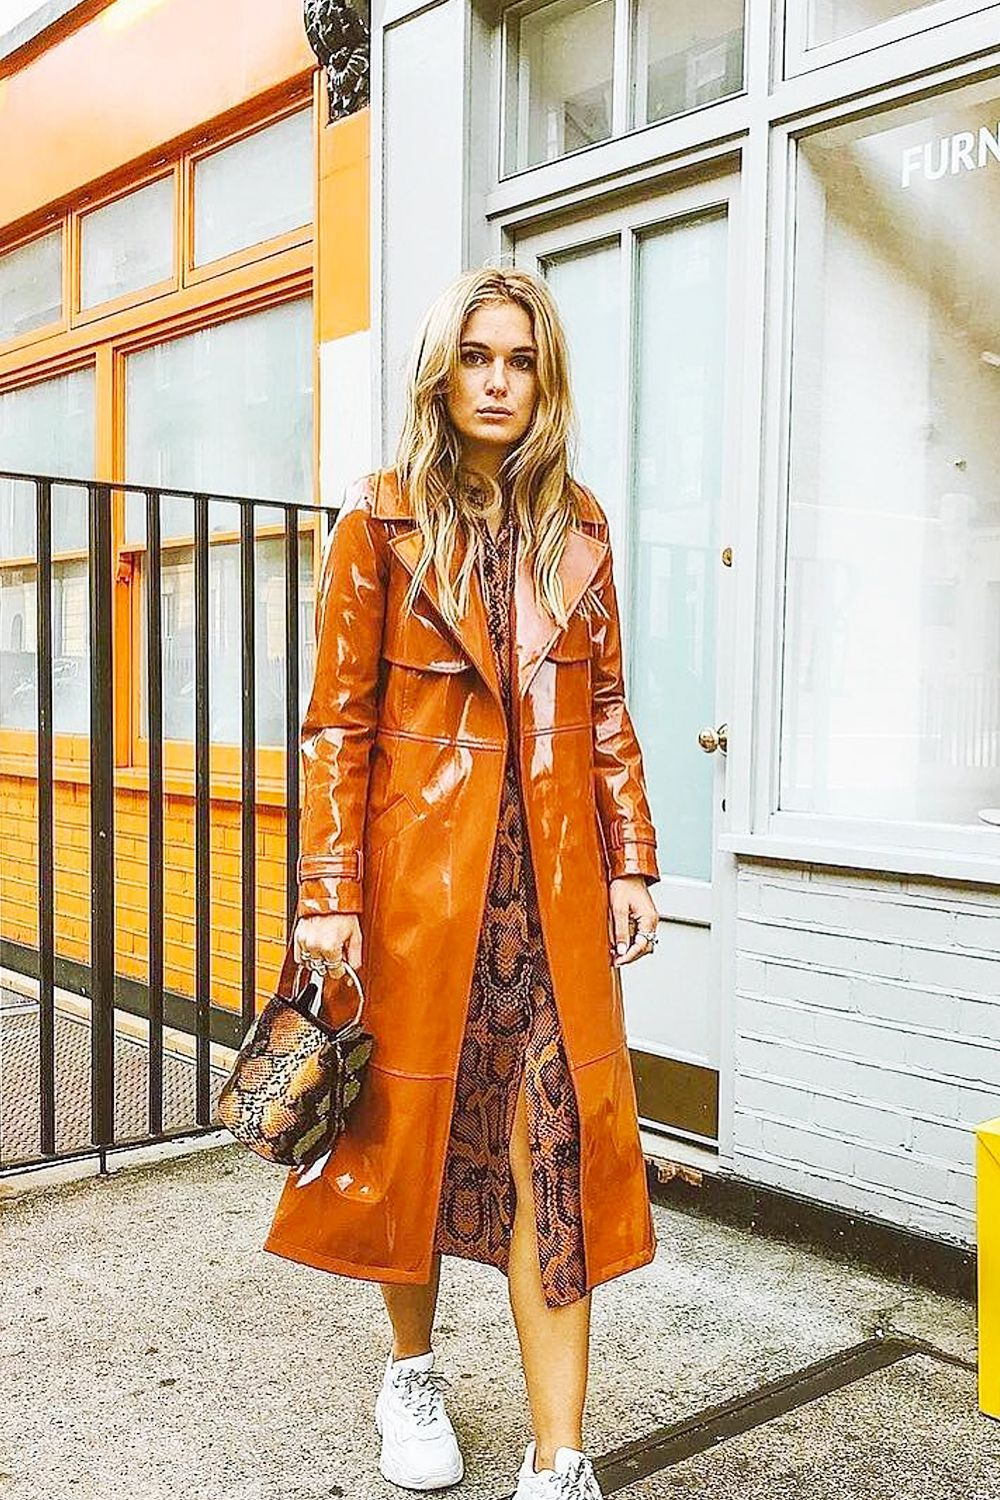 A Sold Out Coat Led Me To Rediscover This Classic High Street Store Naomi Style Notes Everyones Been Obsessed With River Islands Vinyl Season Ross Styles Hers Over An On Trend Snake Print Dress